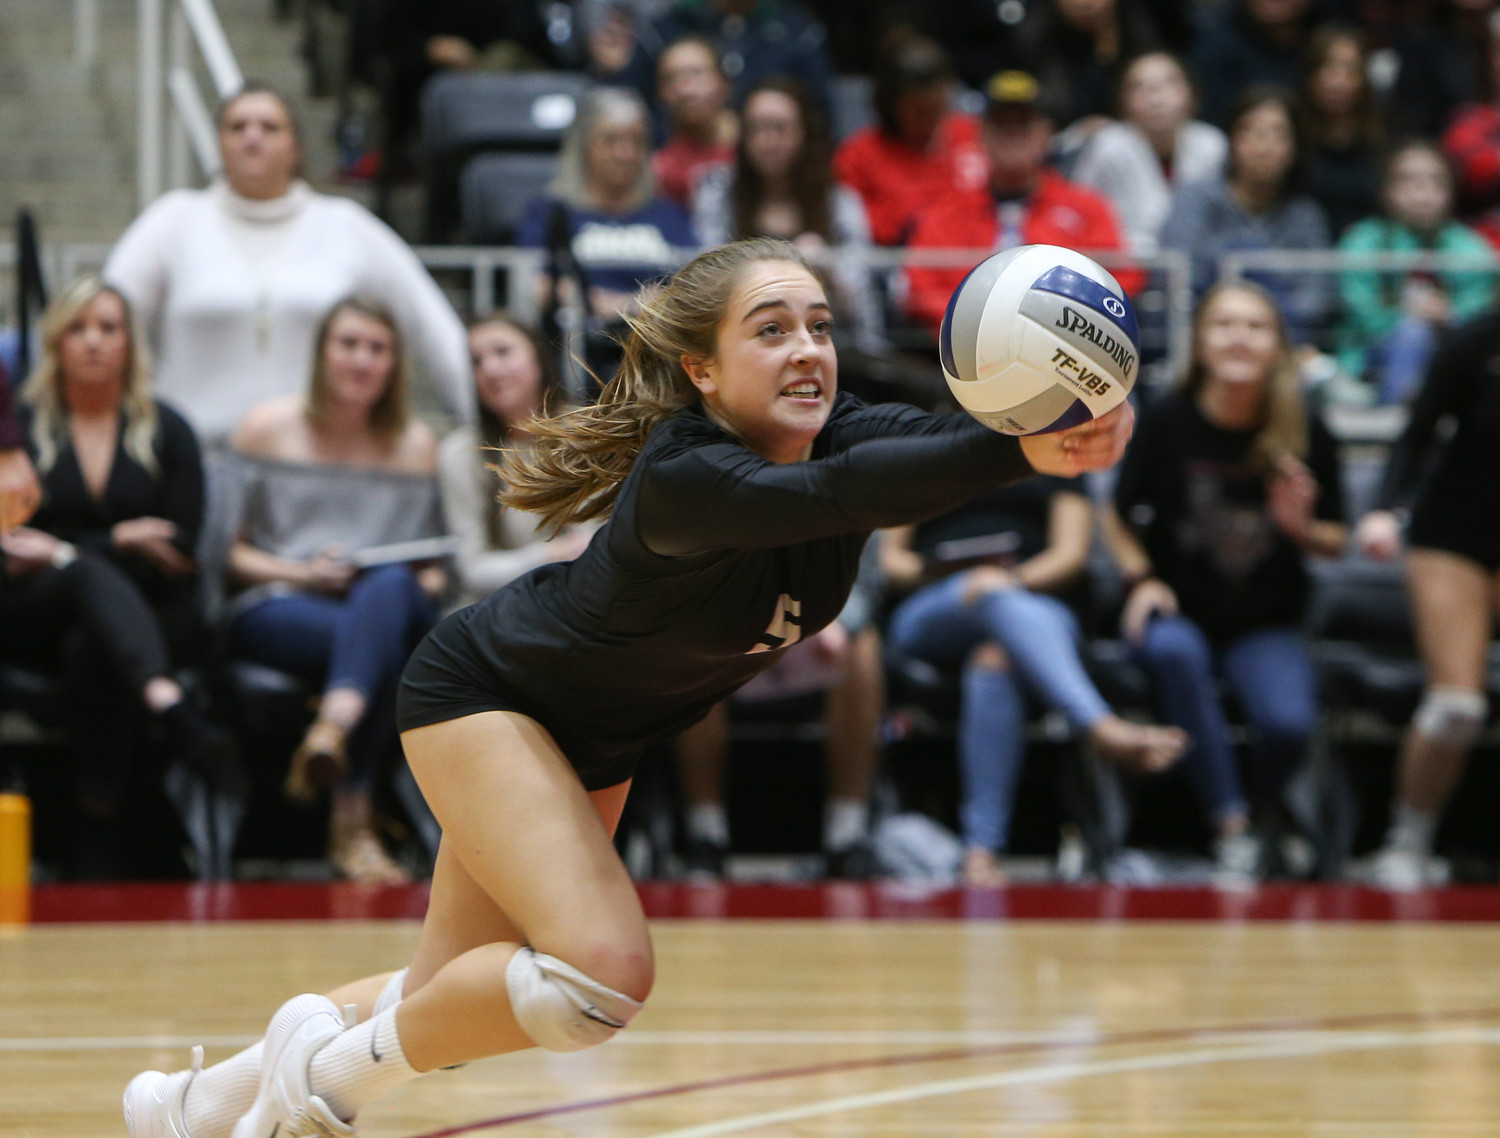 Rouse Raiders sophomore Reilly Heinrich (5) digs the ball during the Class 5A high school volleyball state final between Rouse High School and Prosper High School at Curtis Culwell Center in Garland, Texas, on November 18, 2017. Prosper won the match in five sets, (25-18, 21-25, 18-25, 25, 23, 16-14) to win the 5A state championship.